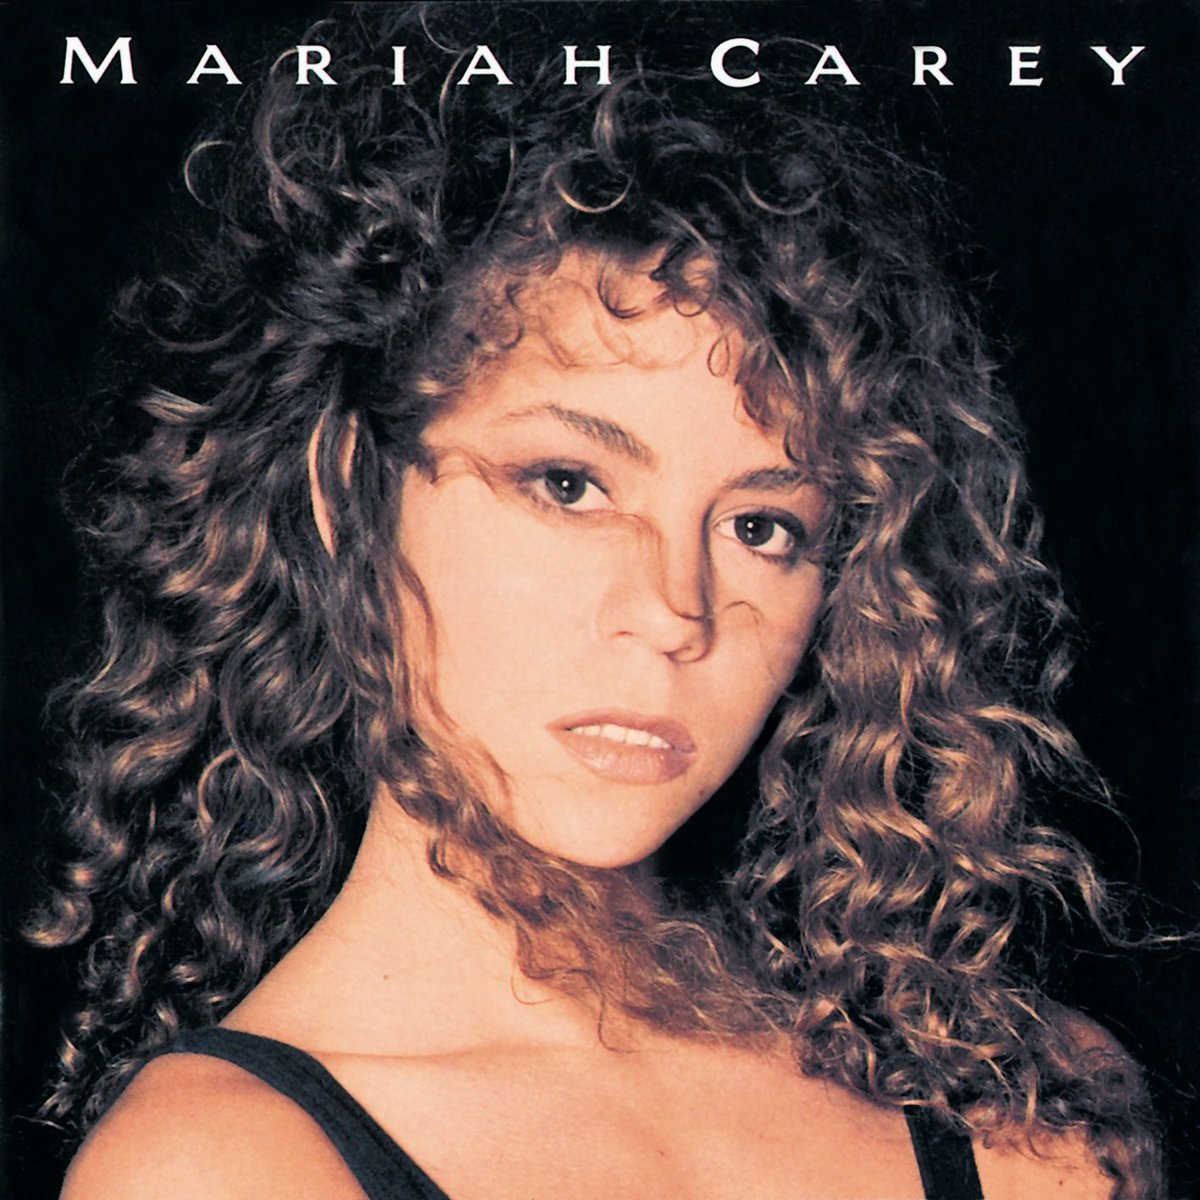 Happy bday to @MariahCarey's debut album #29YearsOfMariahCarey<br>http://pic.twitter.com/a2mmDKj6pG